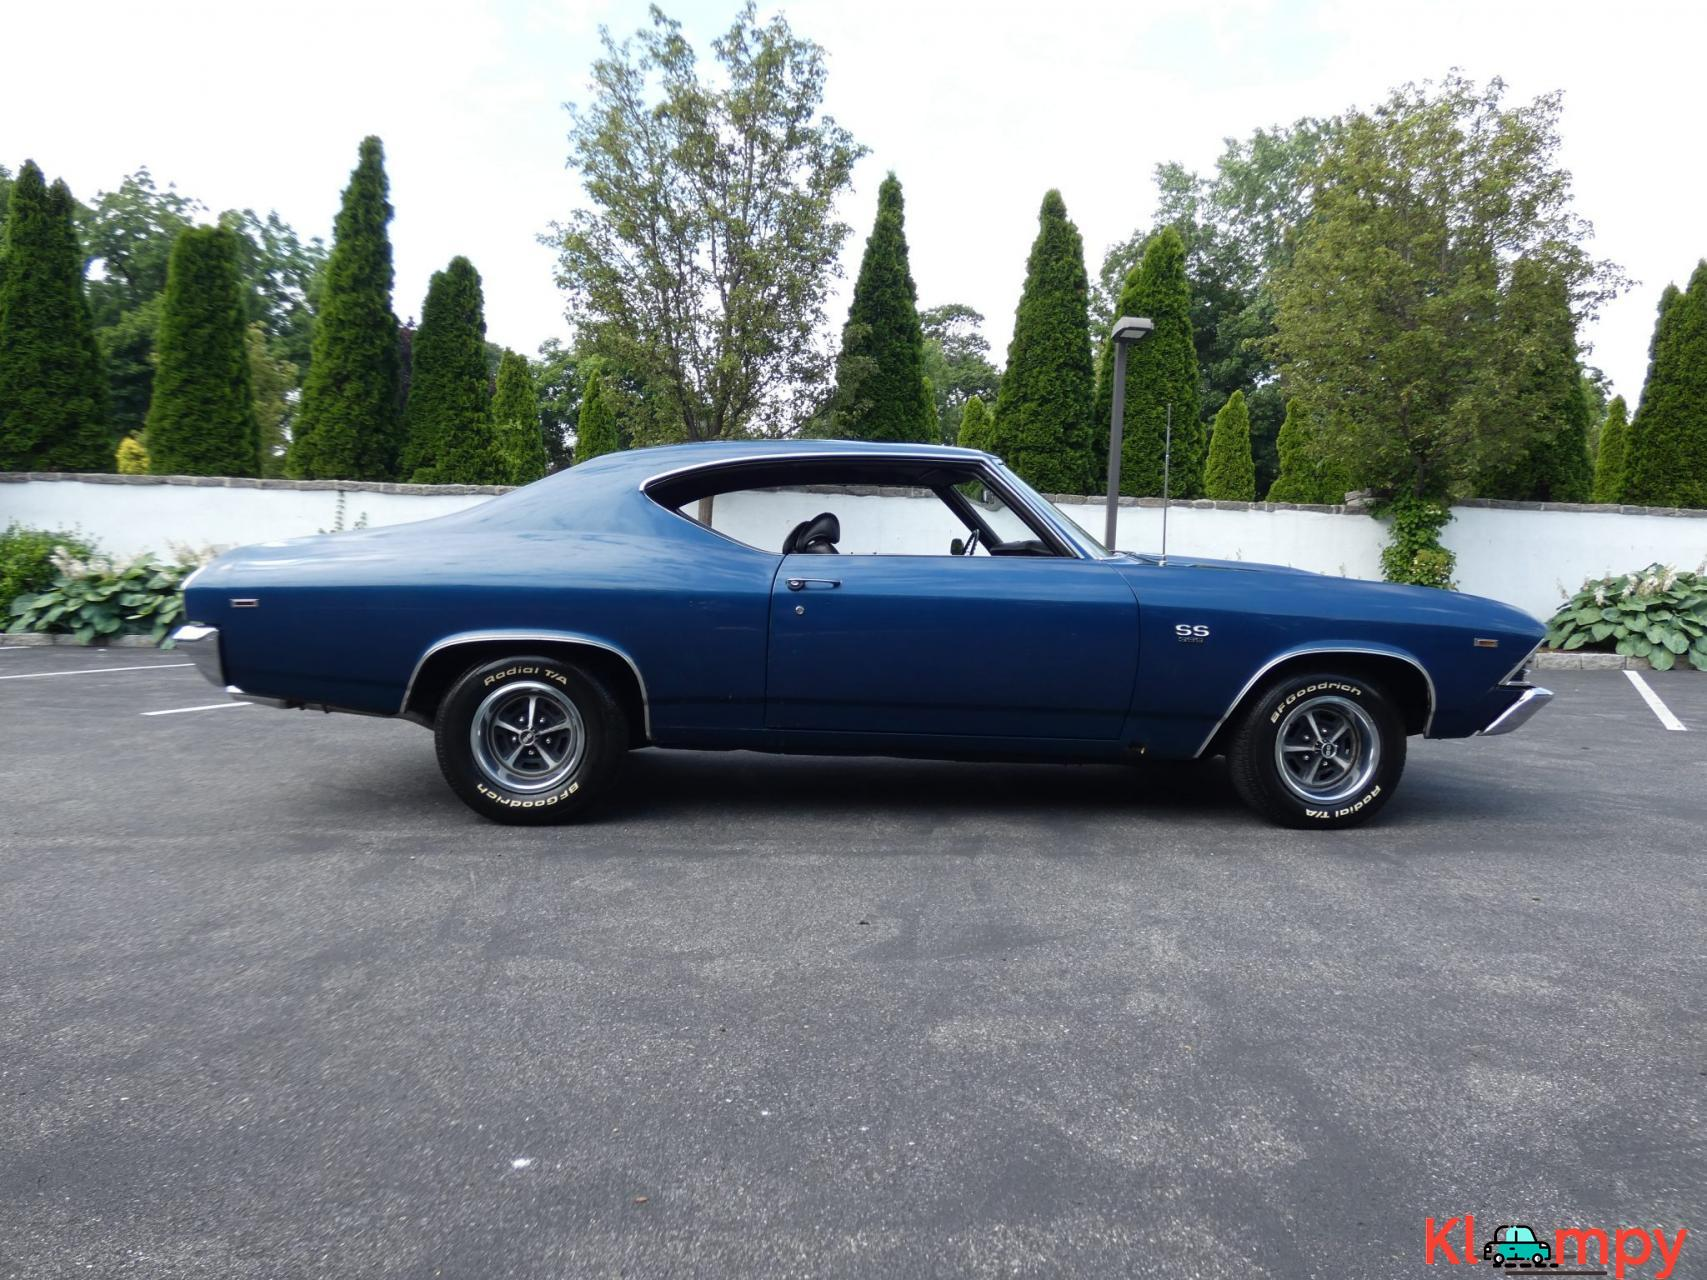 1969 Chevrolet Chevelle SS 396 Sport Coupe - 6/27